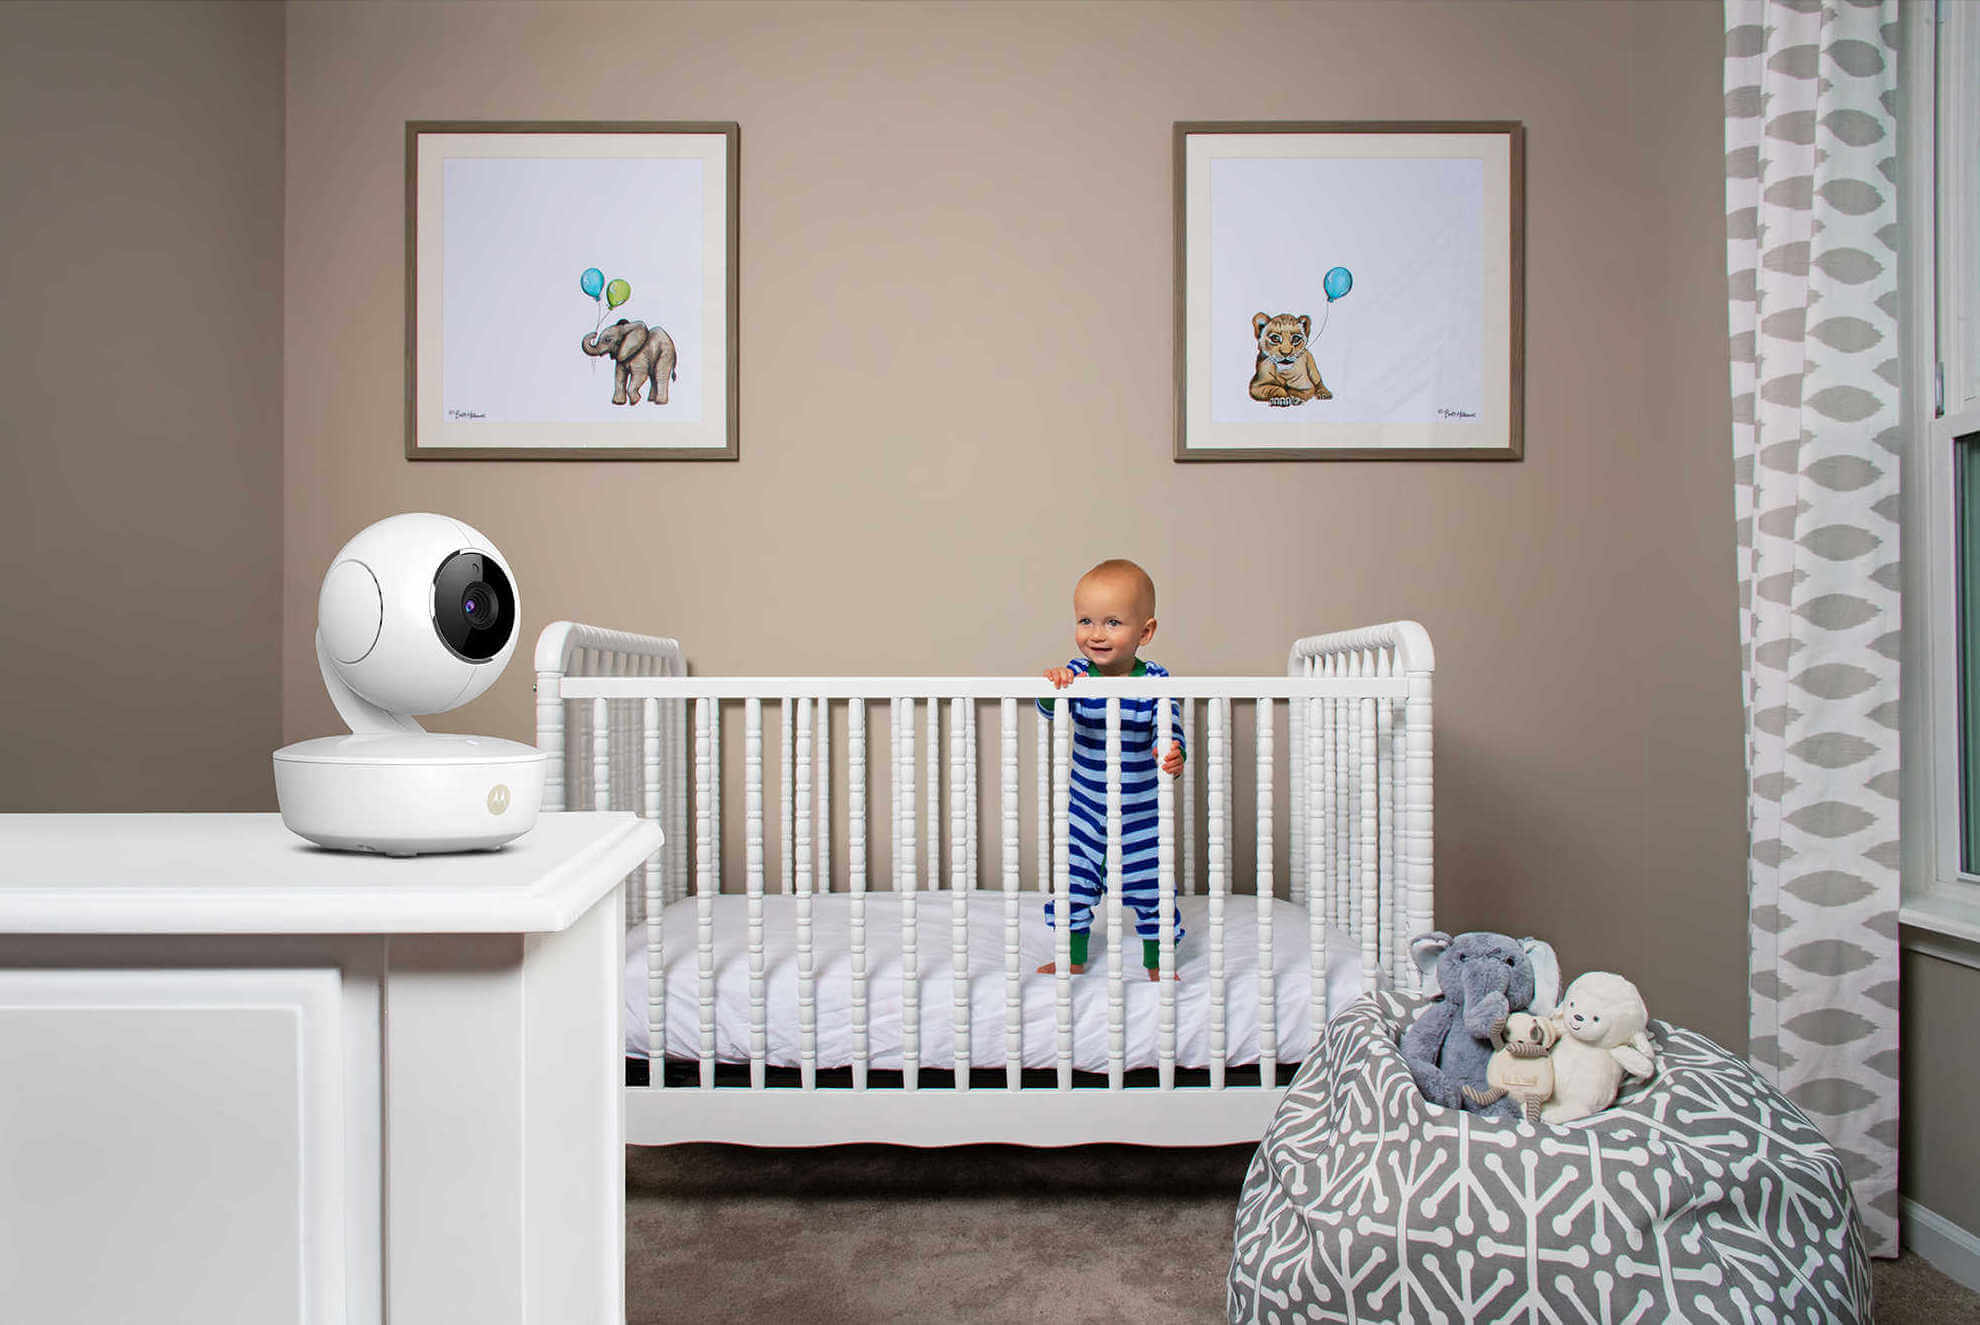 Buy Motorola MBP36XL Portable Video Baby Monitor from ...